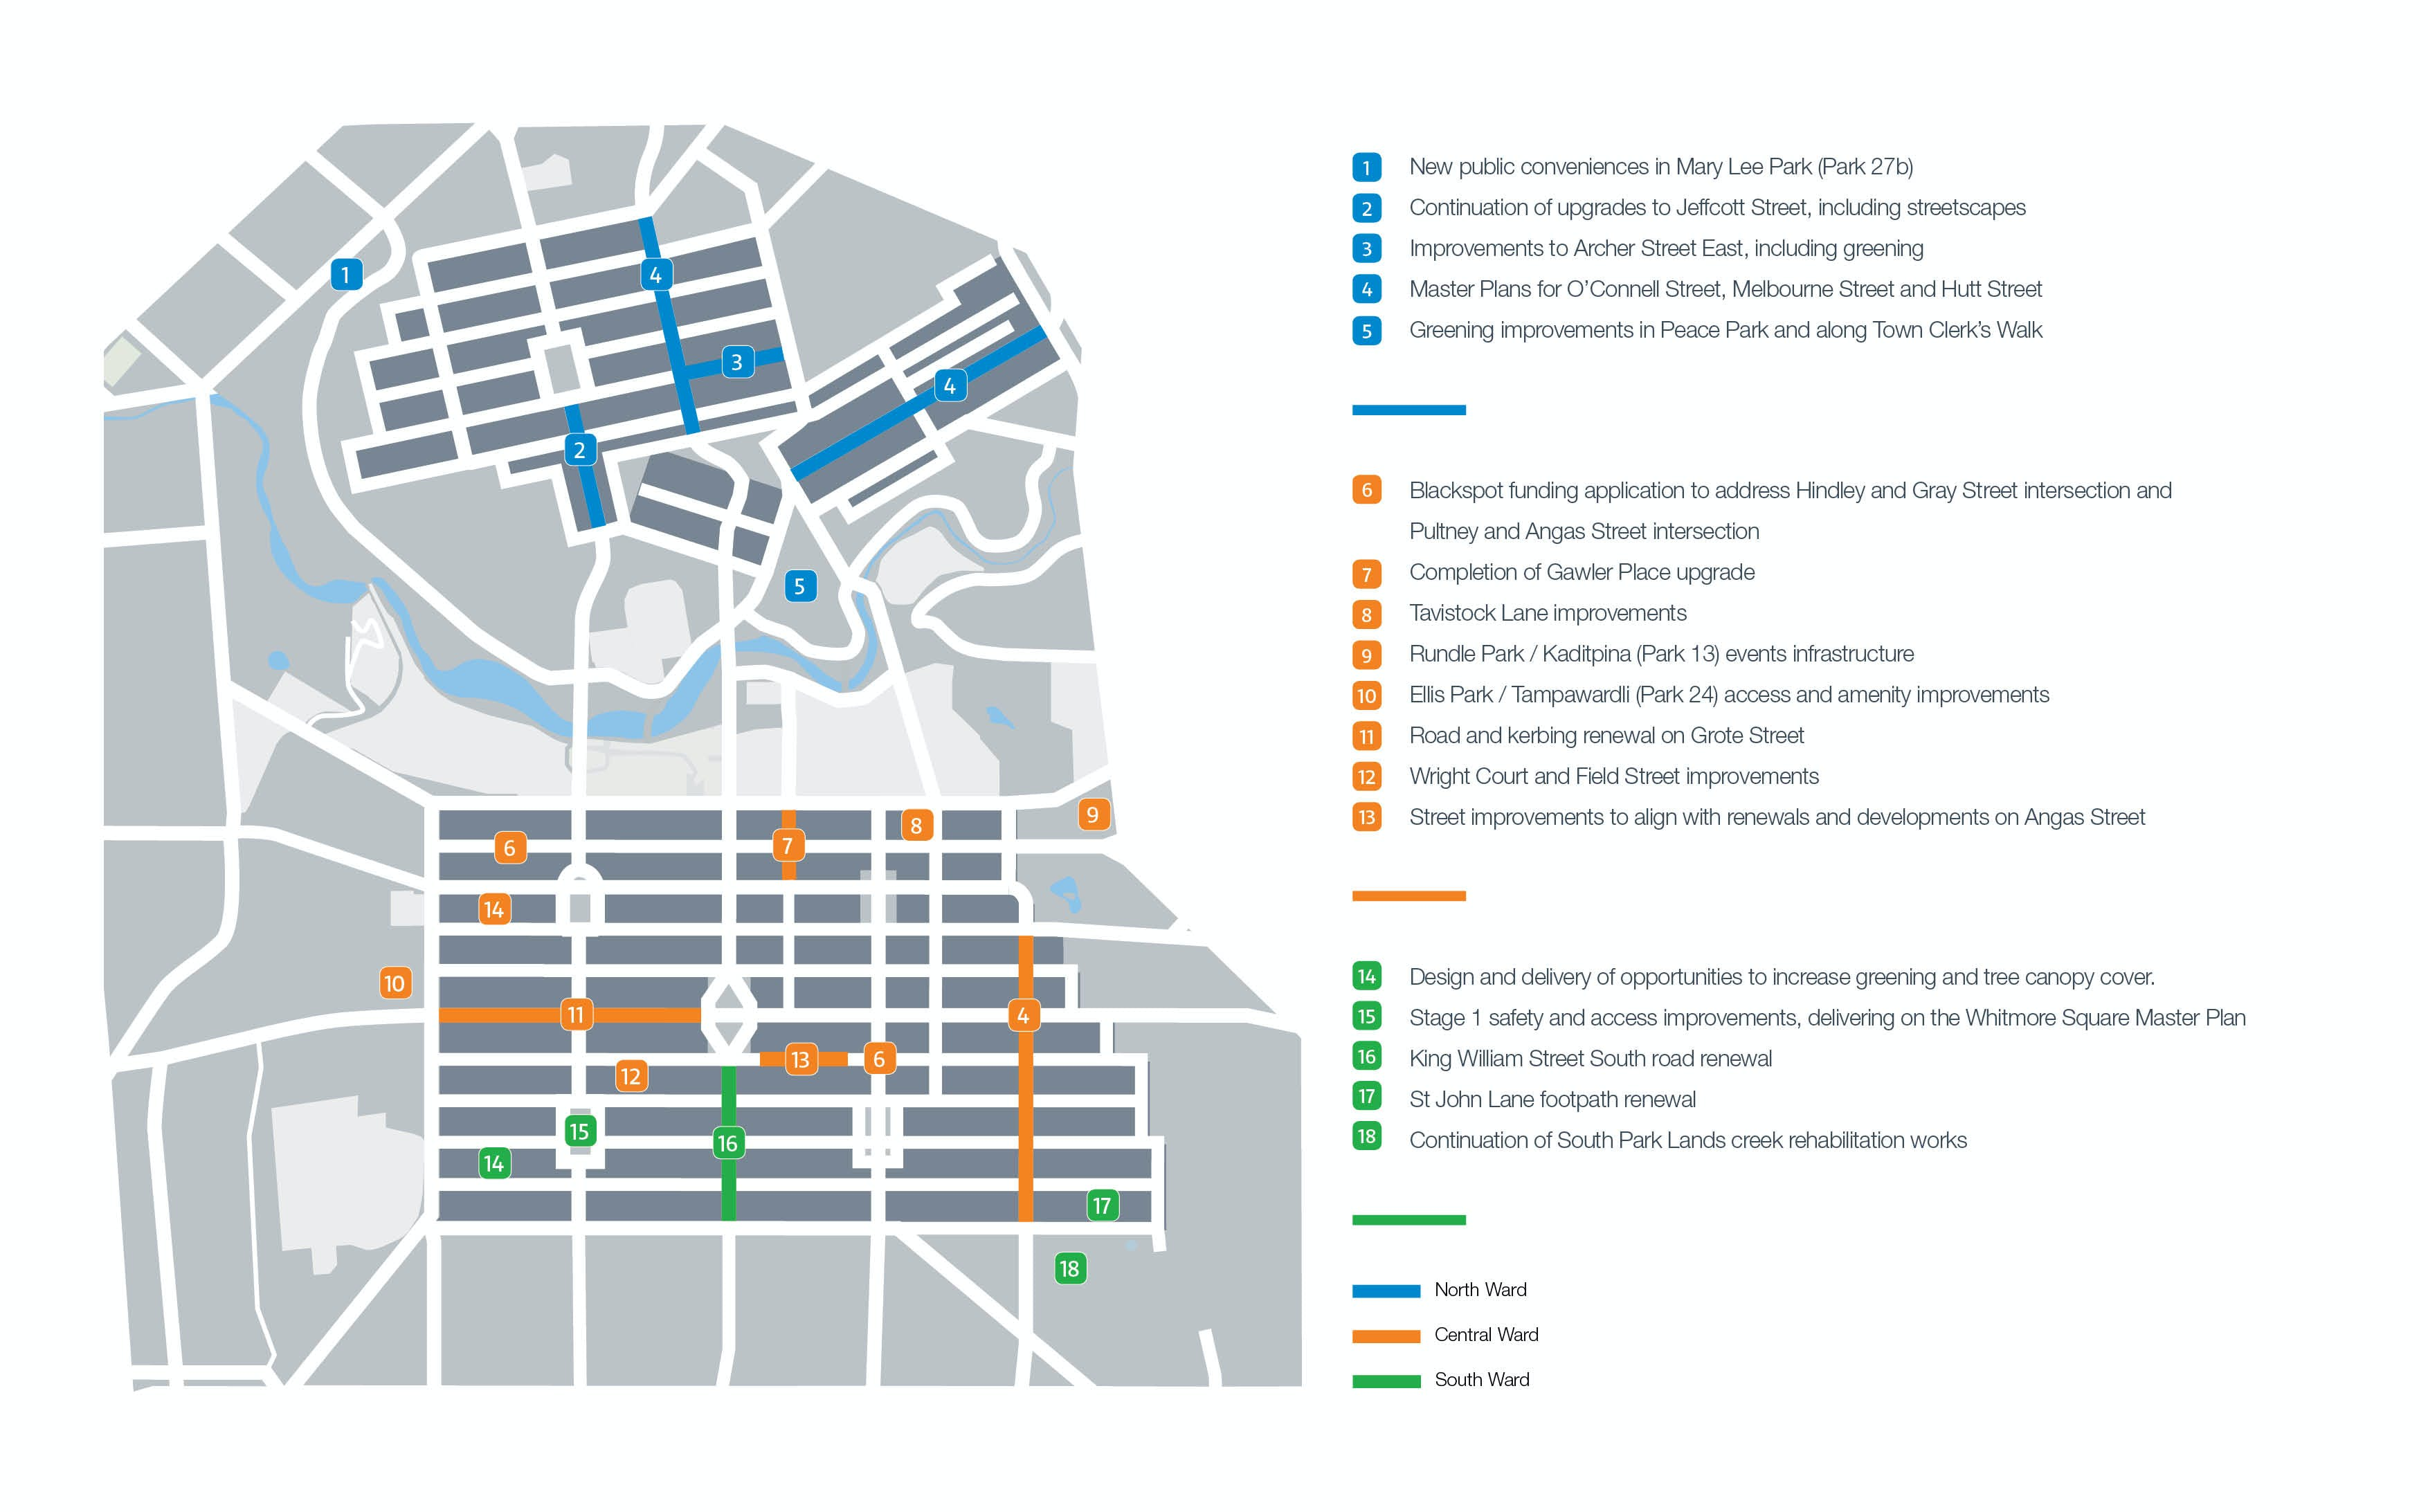 2019-20 Key Projects Map